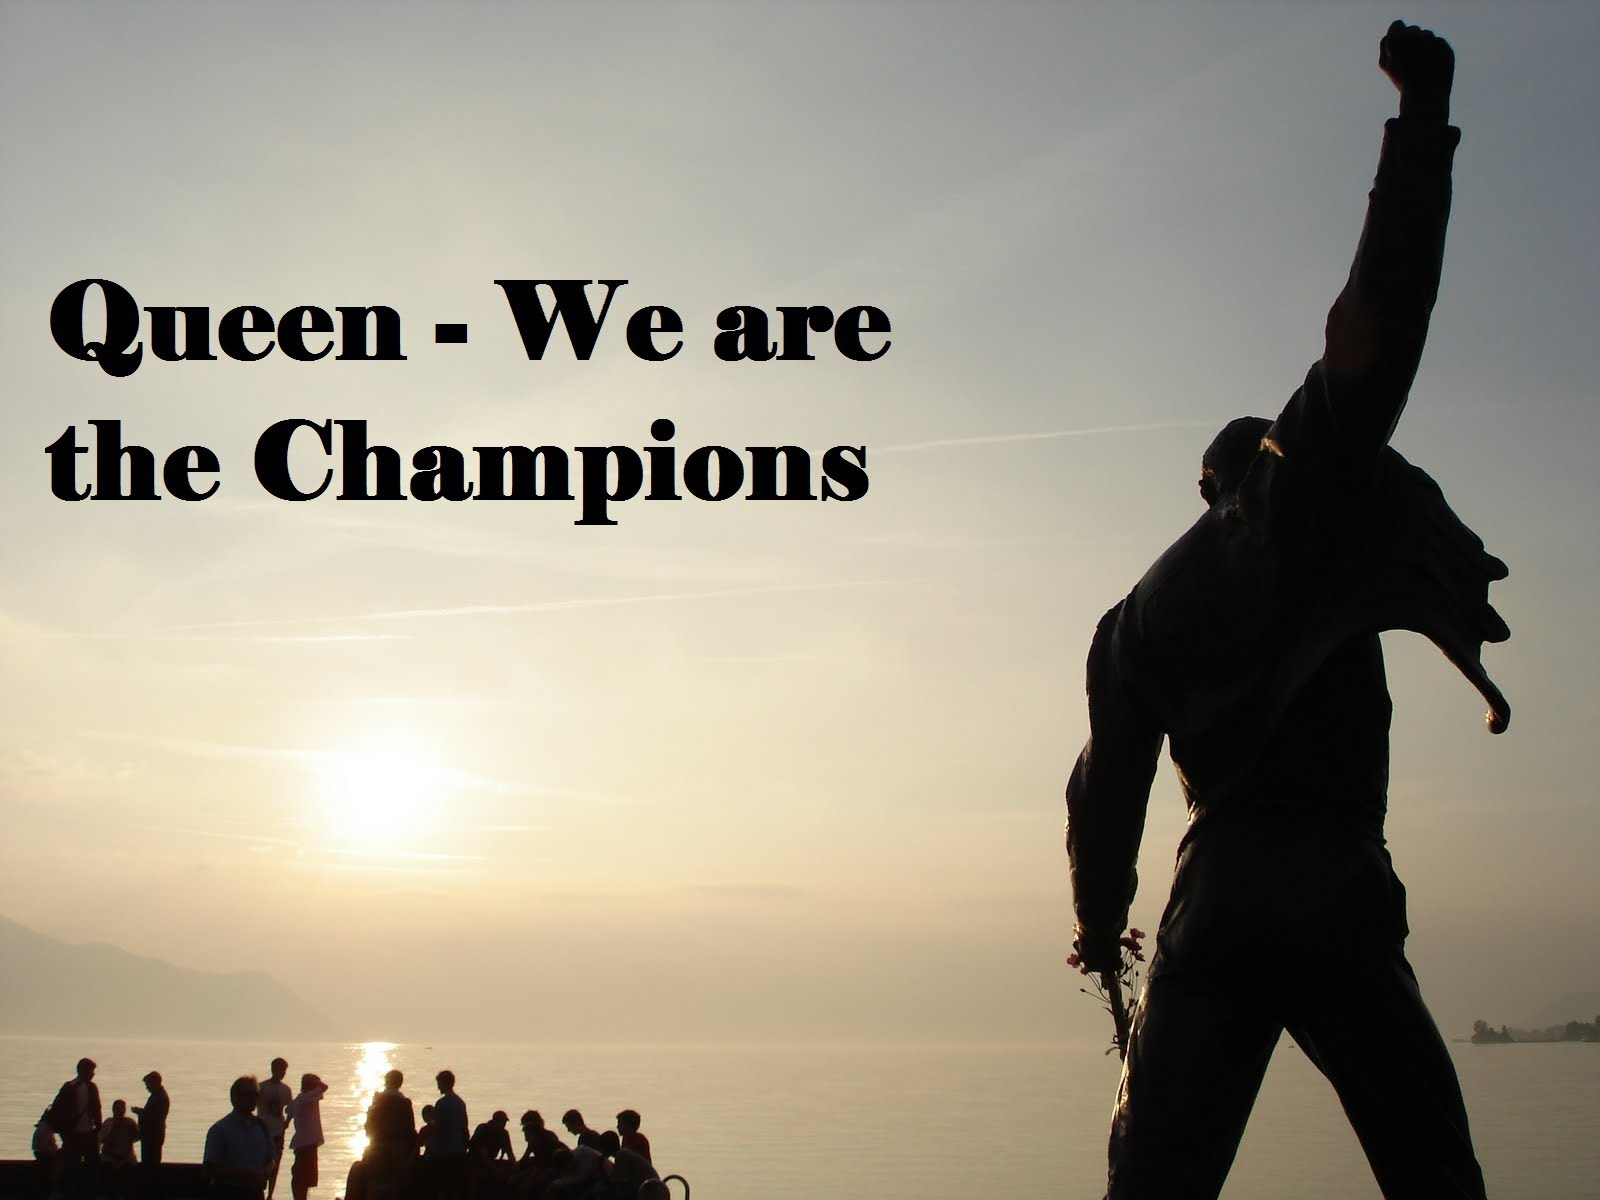 Motivational Song: We are the Champions – Queen